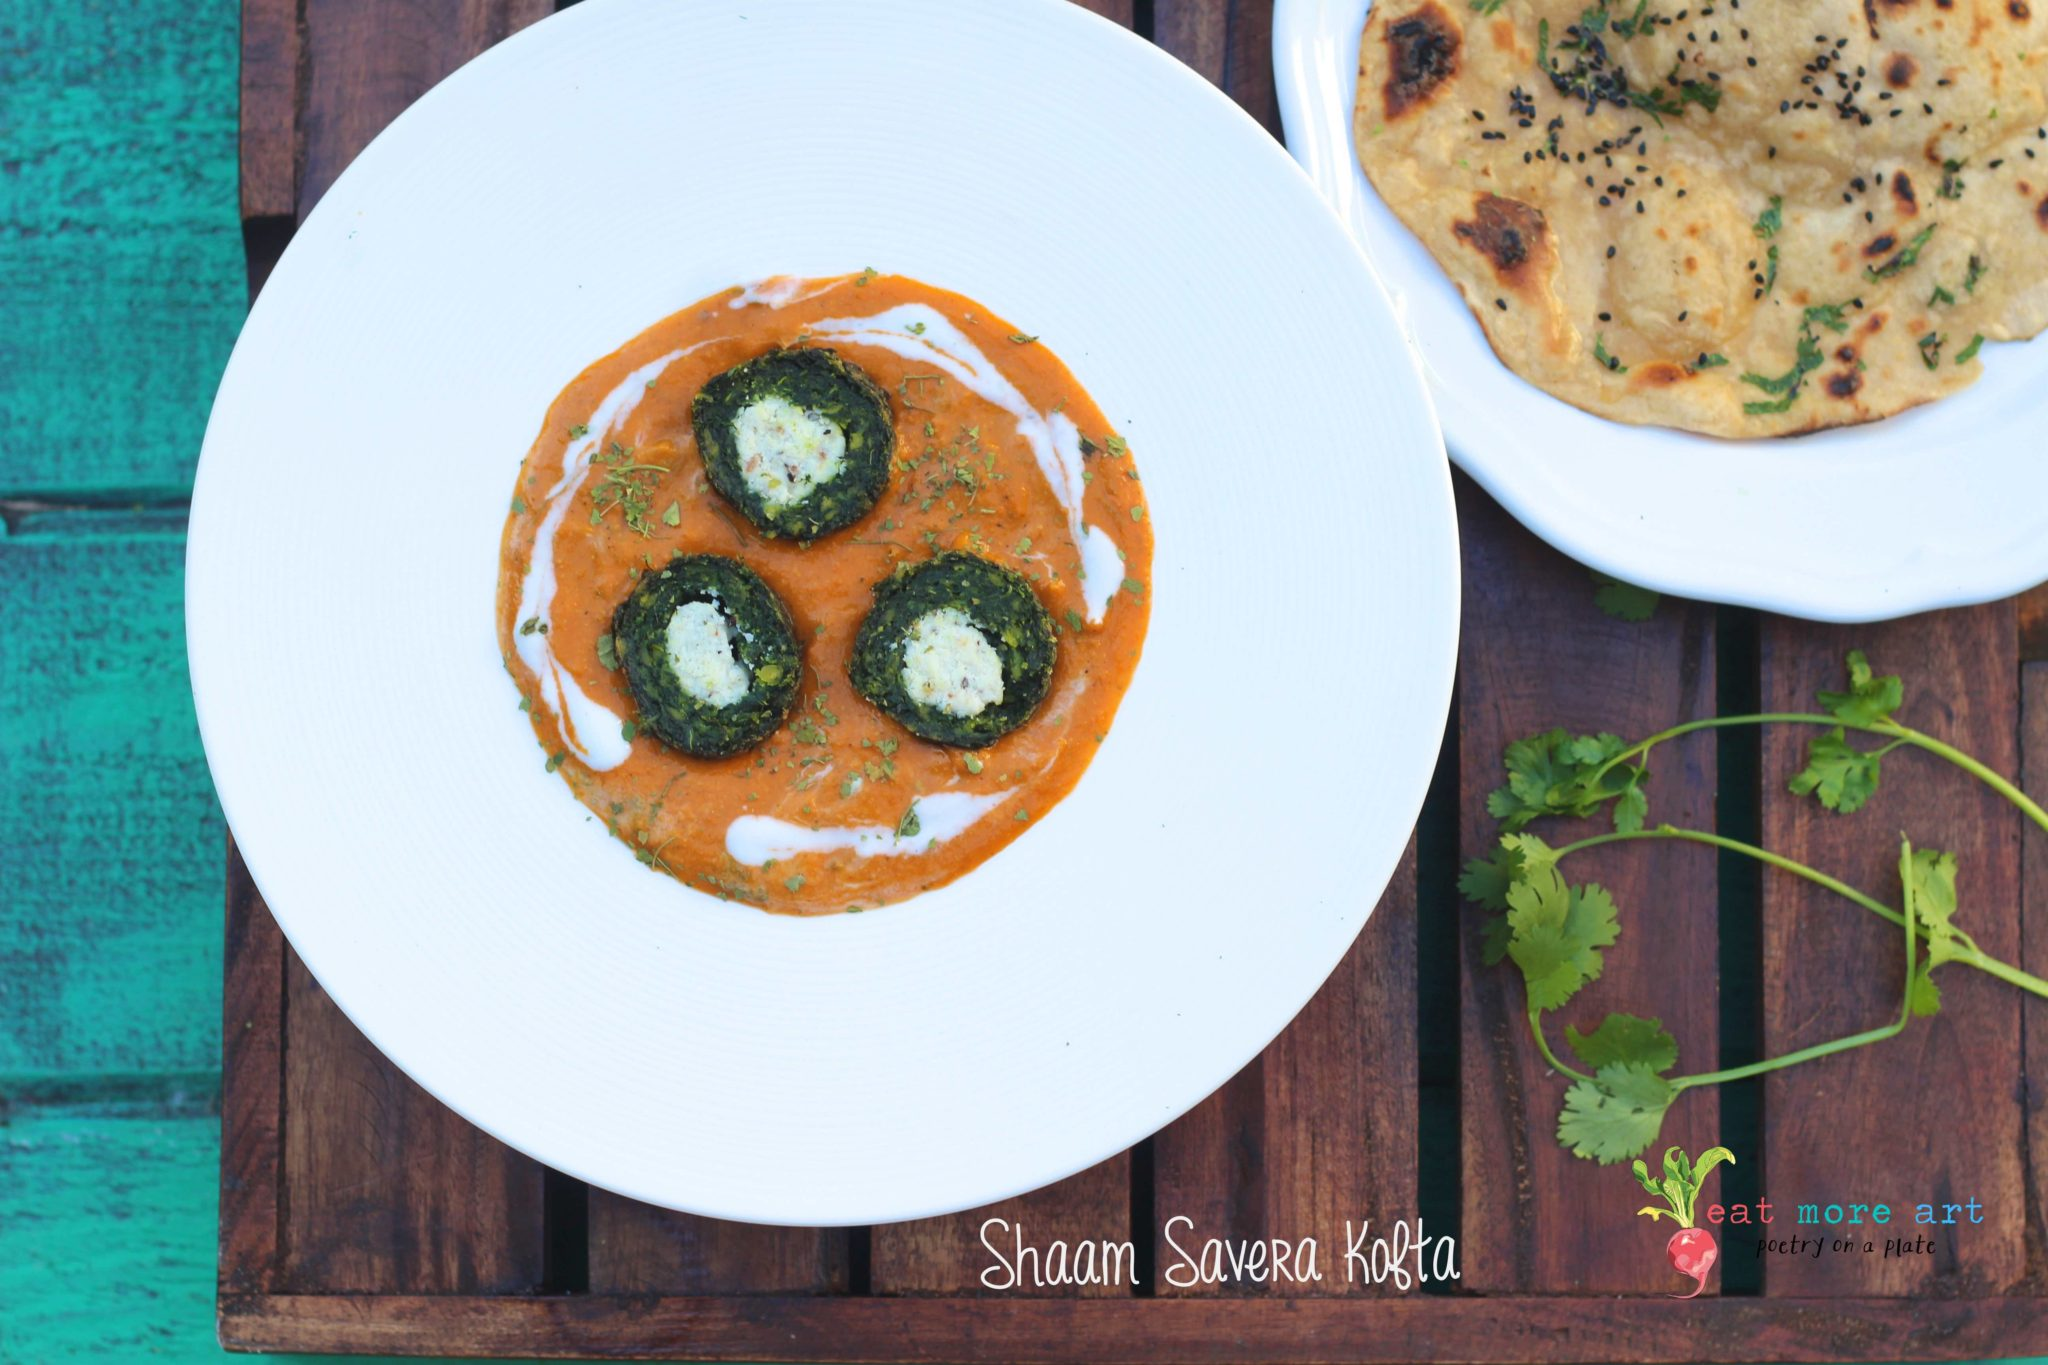 Shaam Savera Kofta | Eat More Art